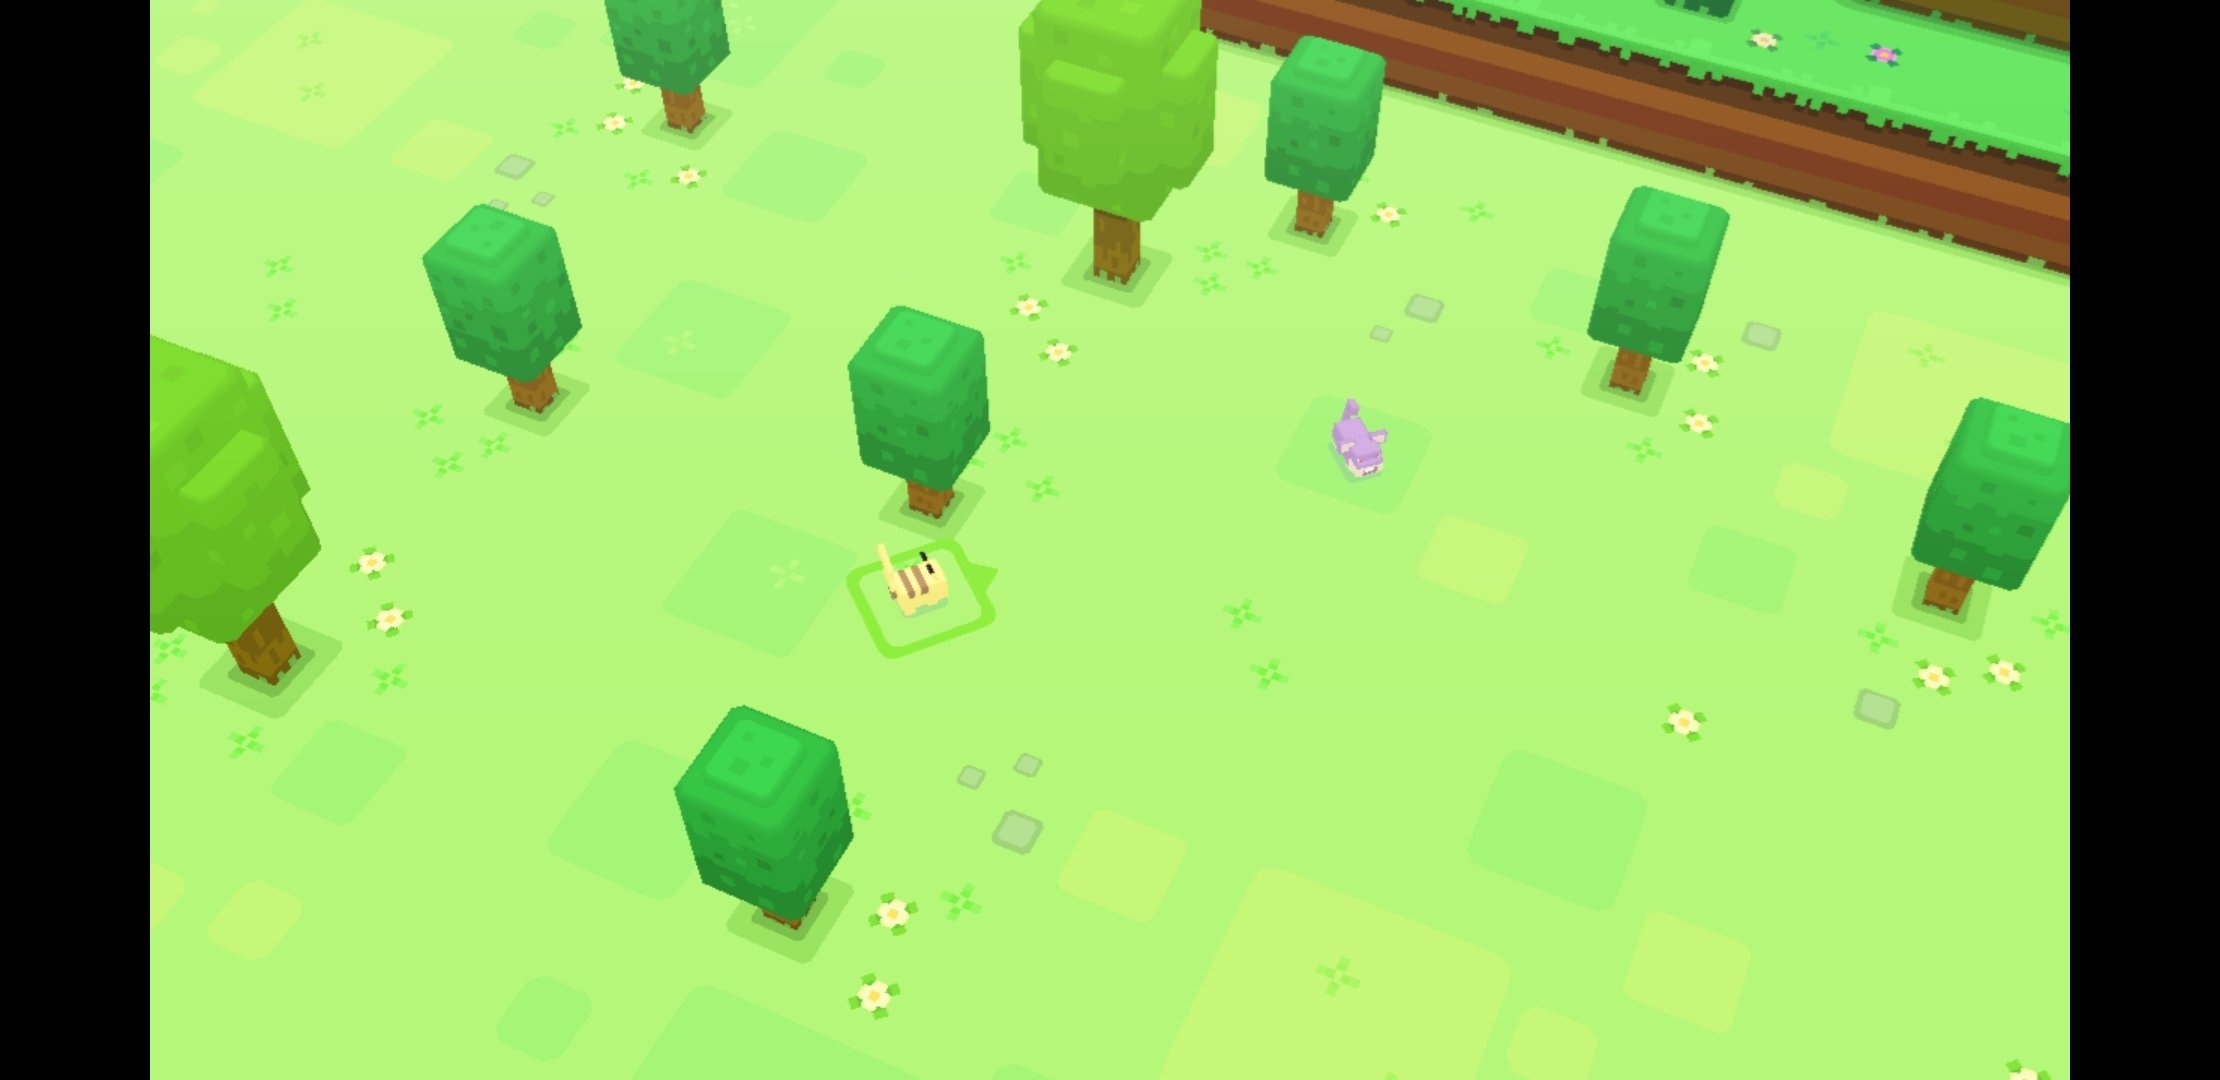 Pokémon Quest 1 0 4 - Download for Android APK Free